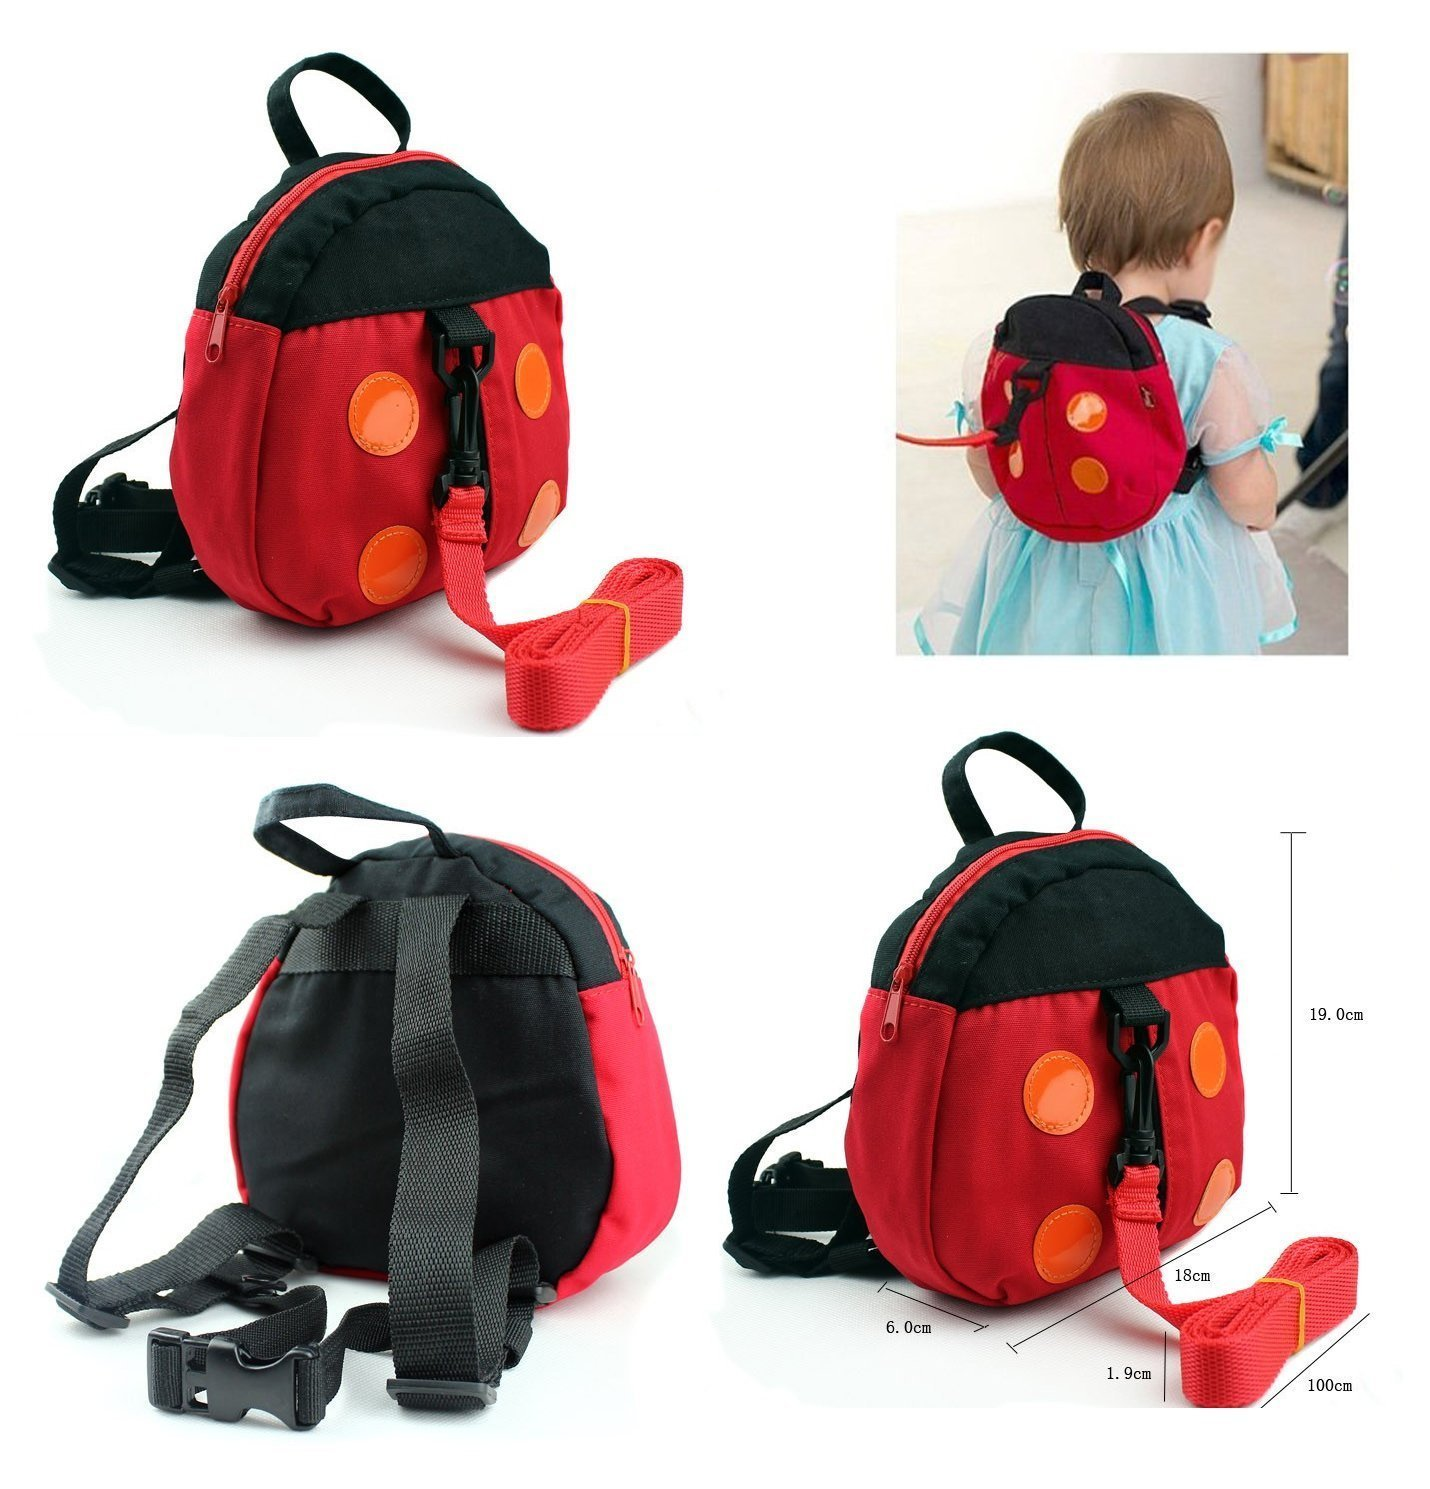 Safety Backpack Harness infant anti-lost band baby toddler belt—Ladybug AAA+A